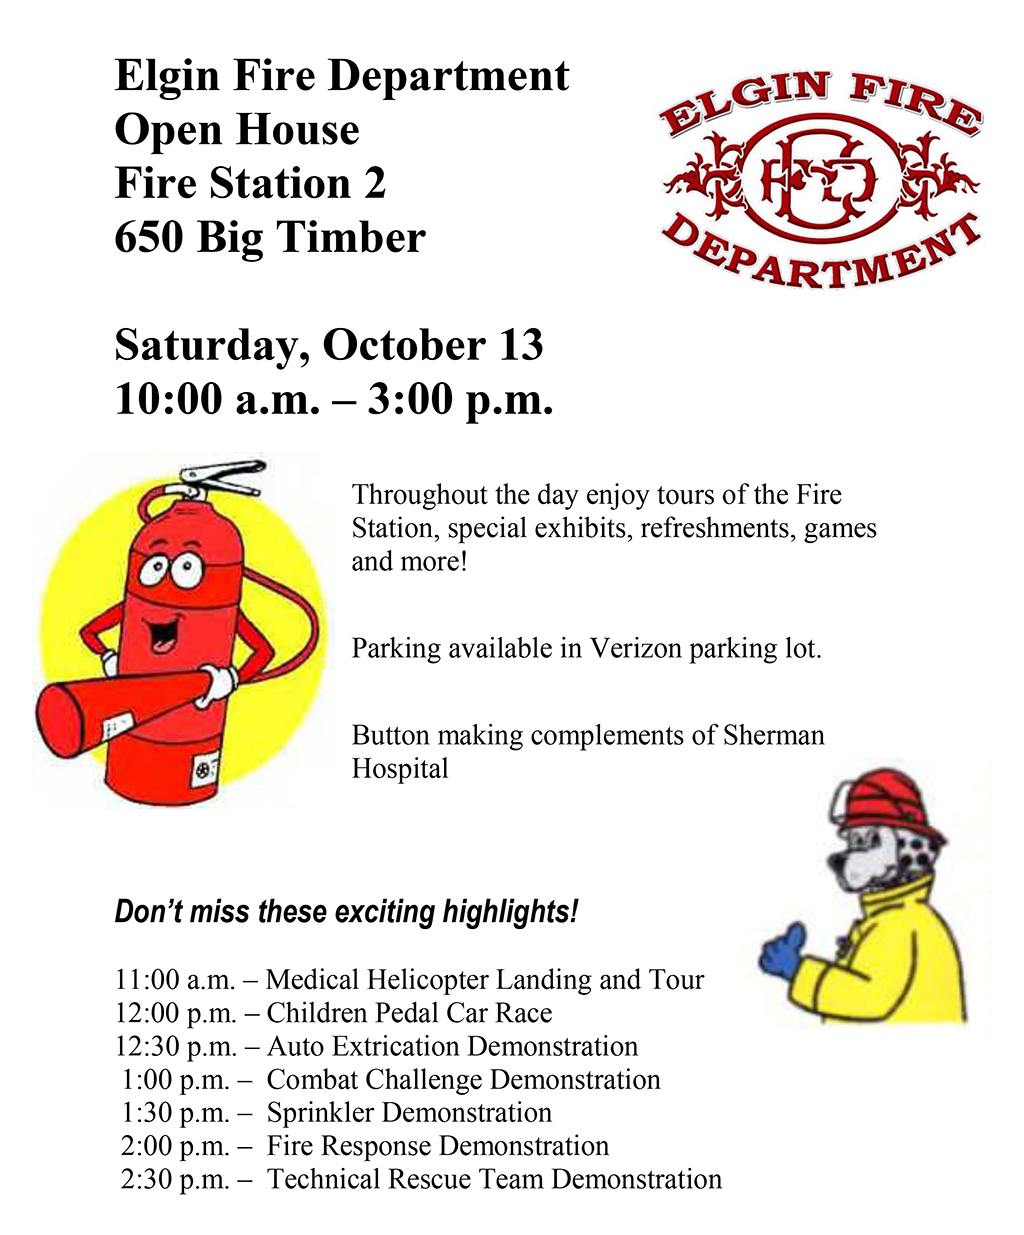 Elgine Fire Department Open House 2012